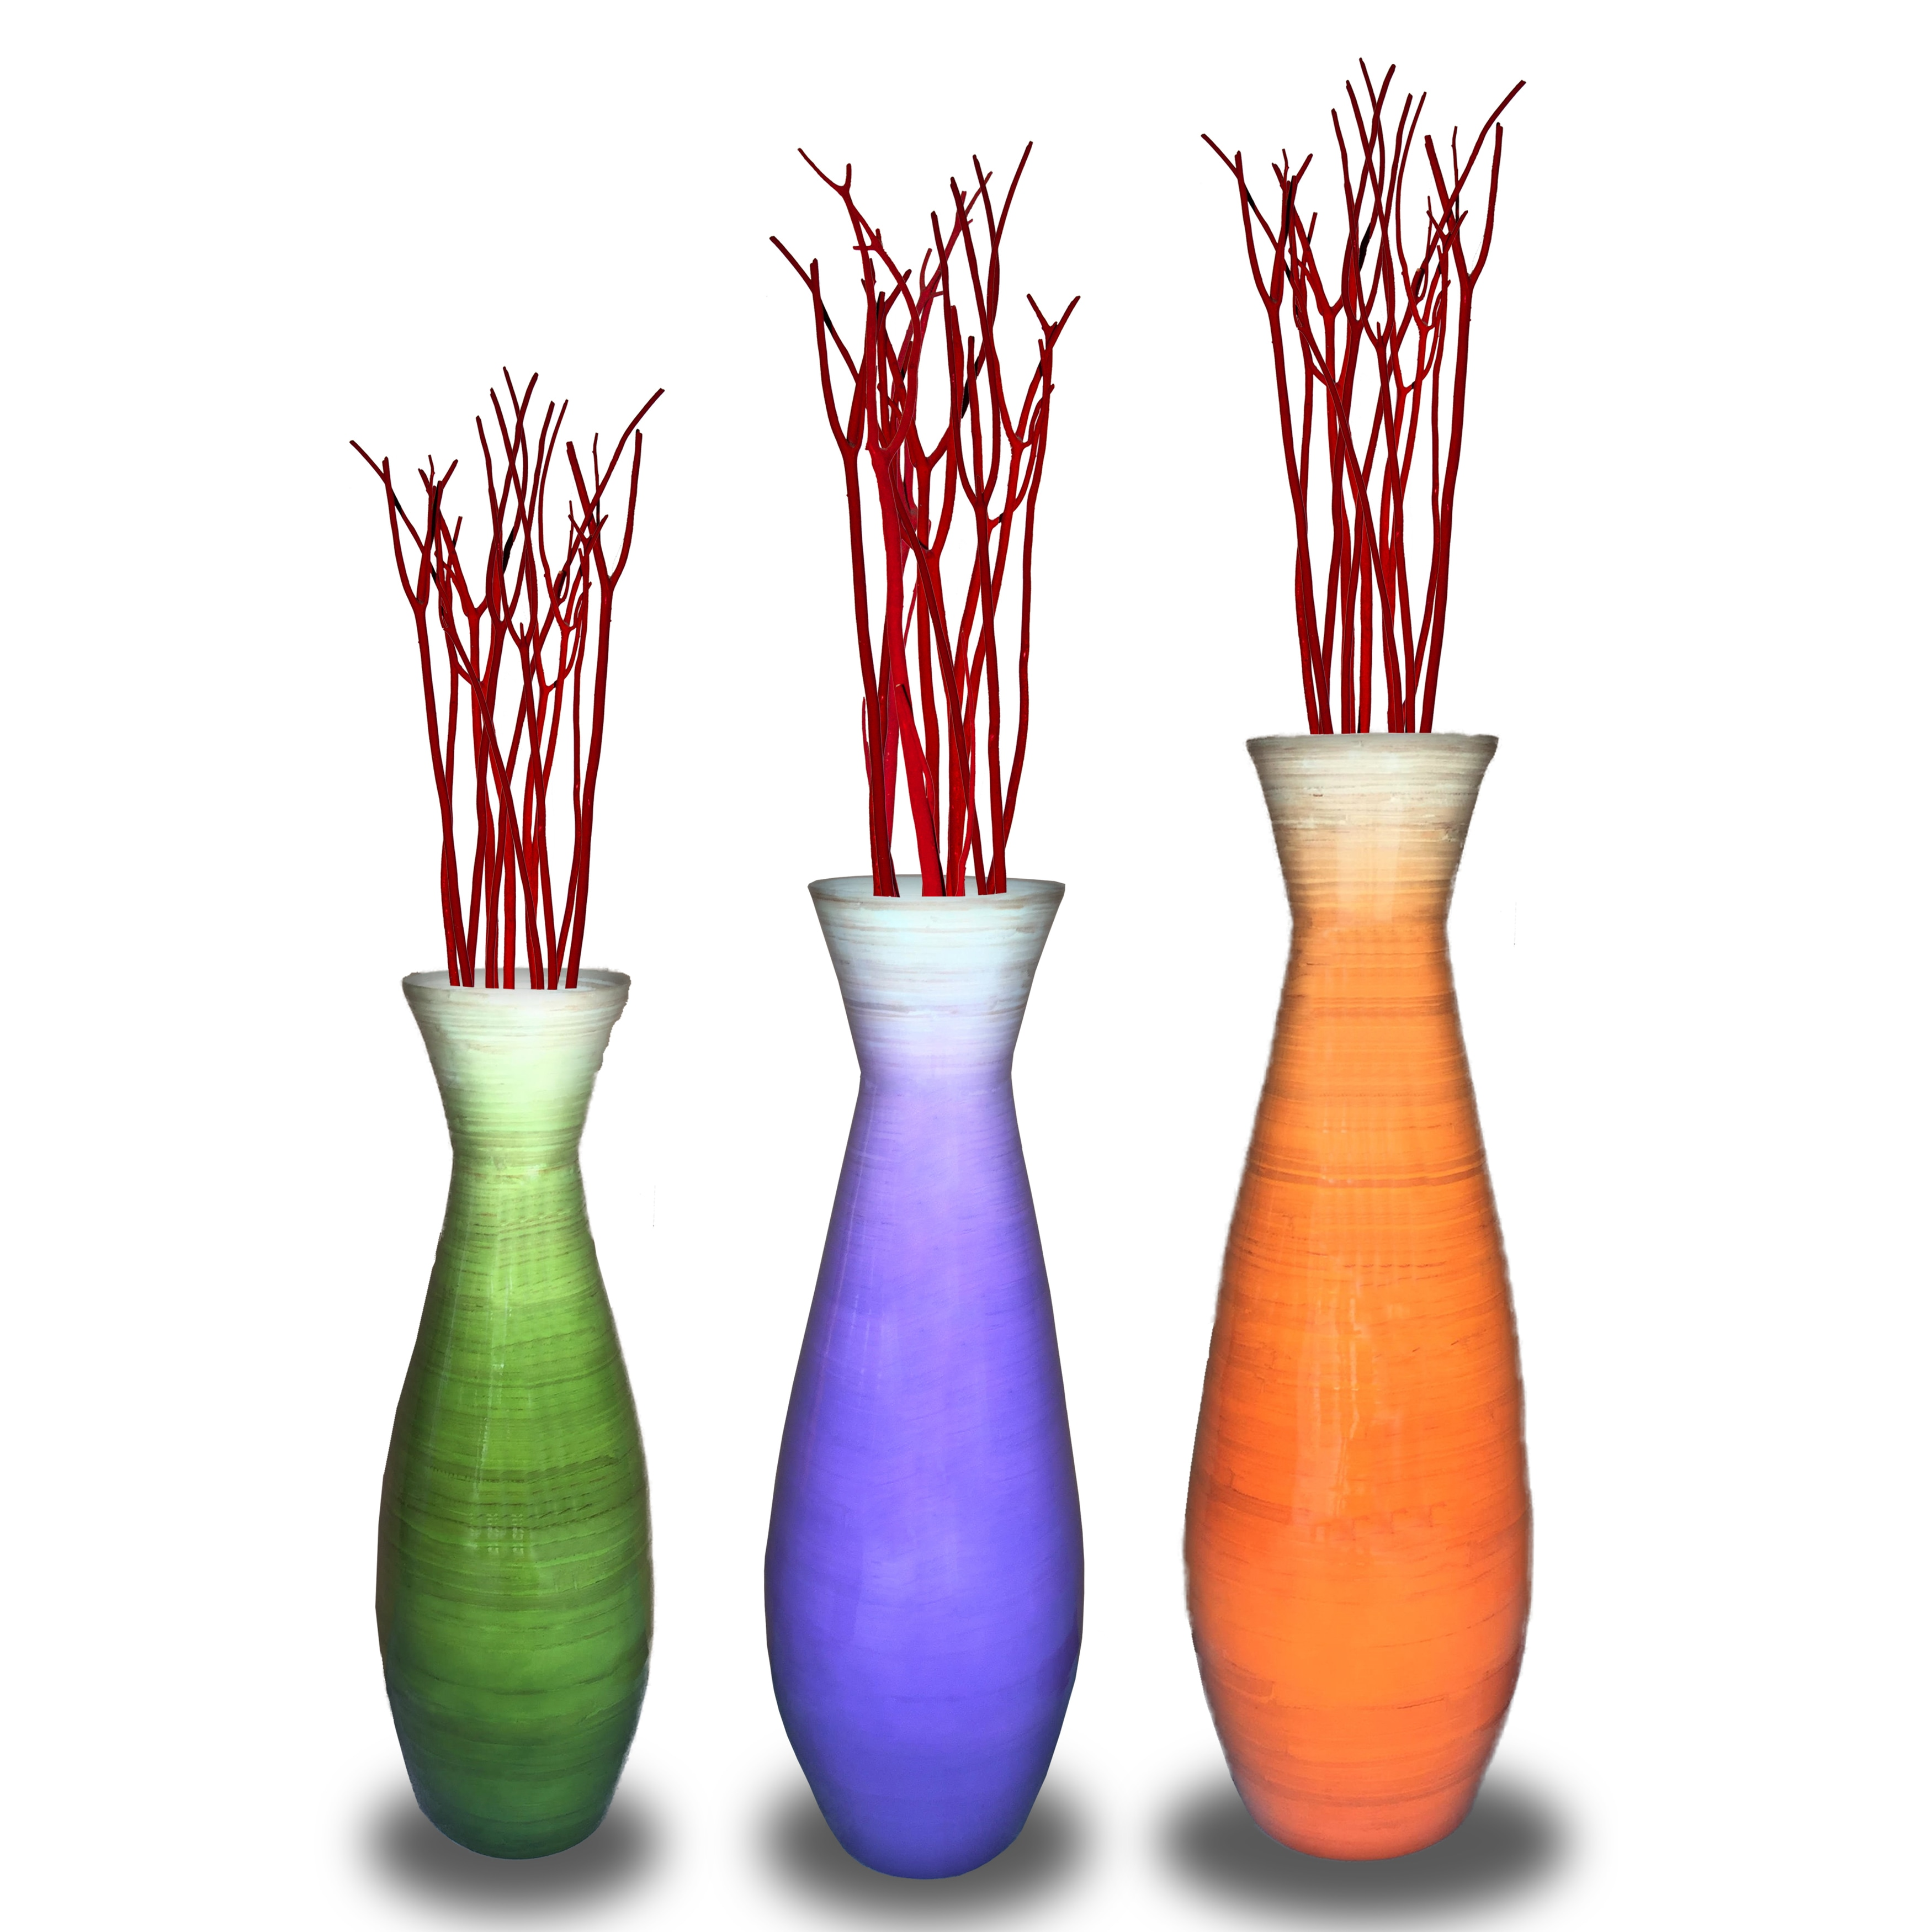 Well-liked Set of 3 Tall Bamboo Floor Vases, in Orange, Purple, and Green  ON08